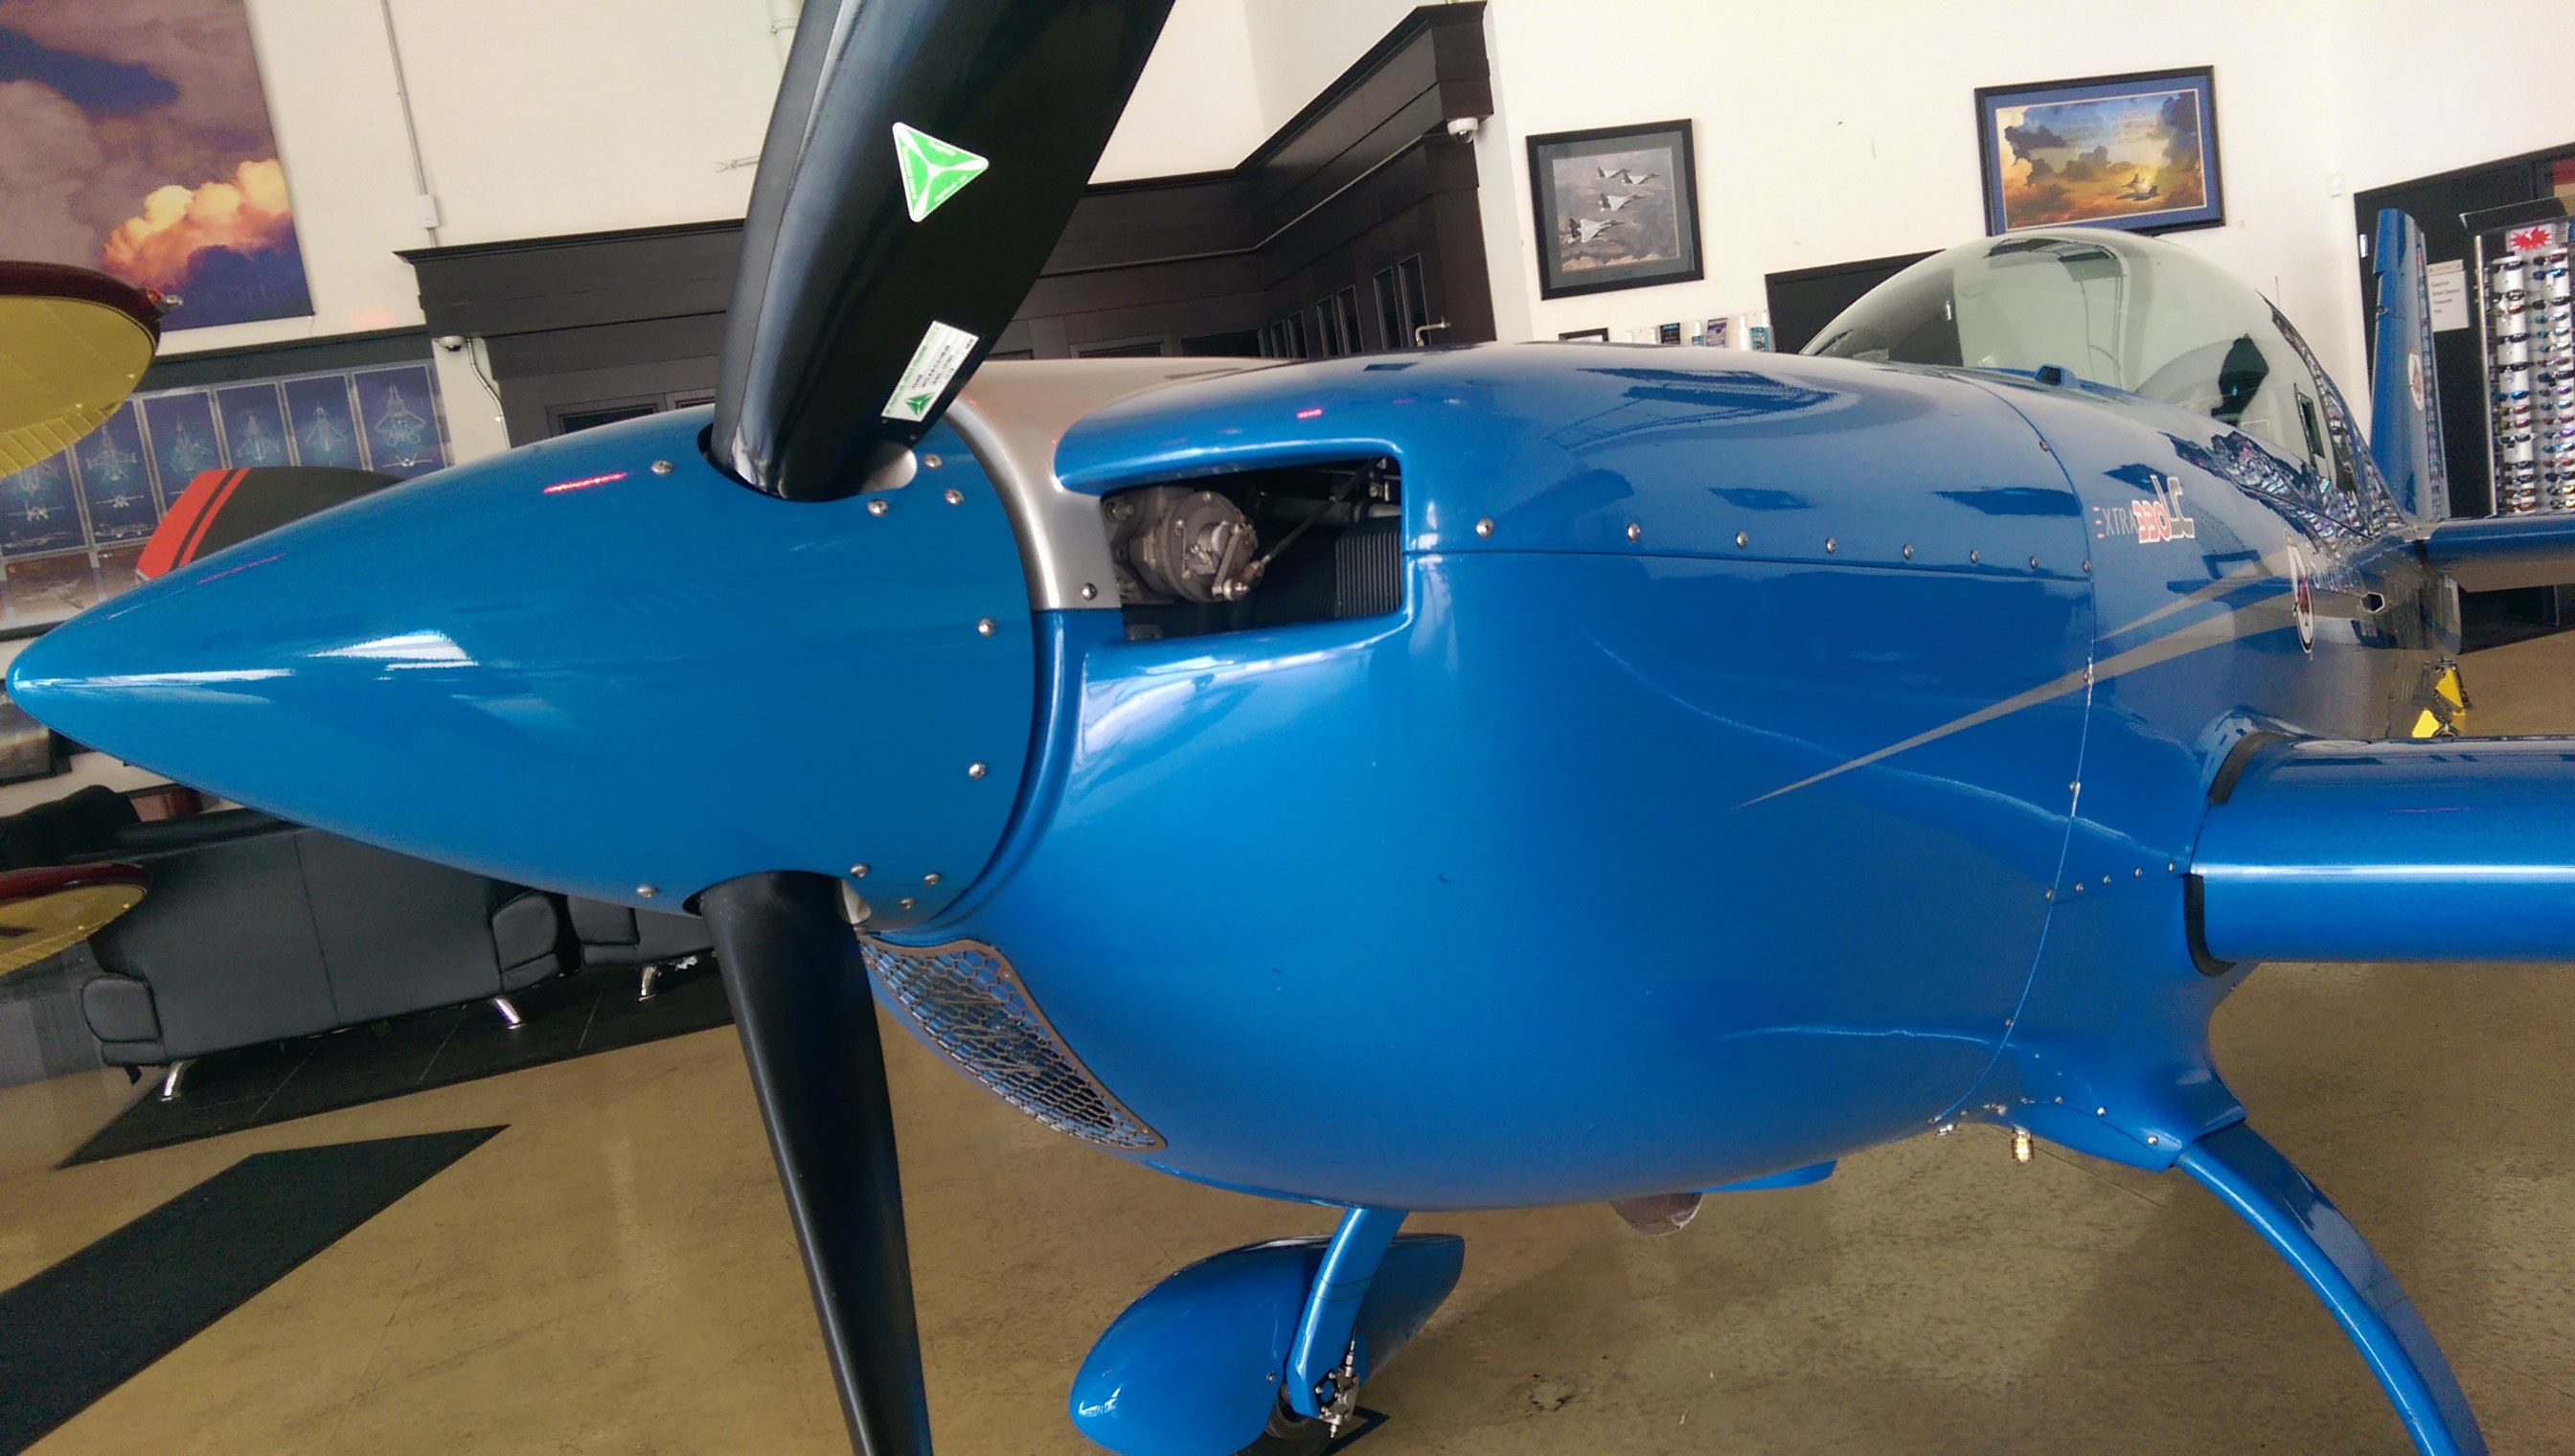 Blue airplane at Sky Combat Ace in Las Vegas